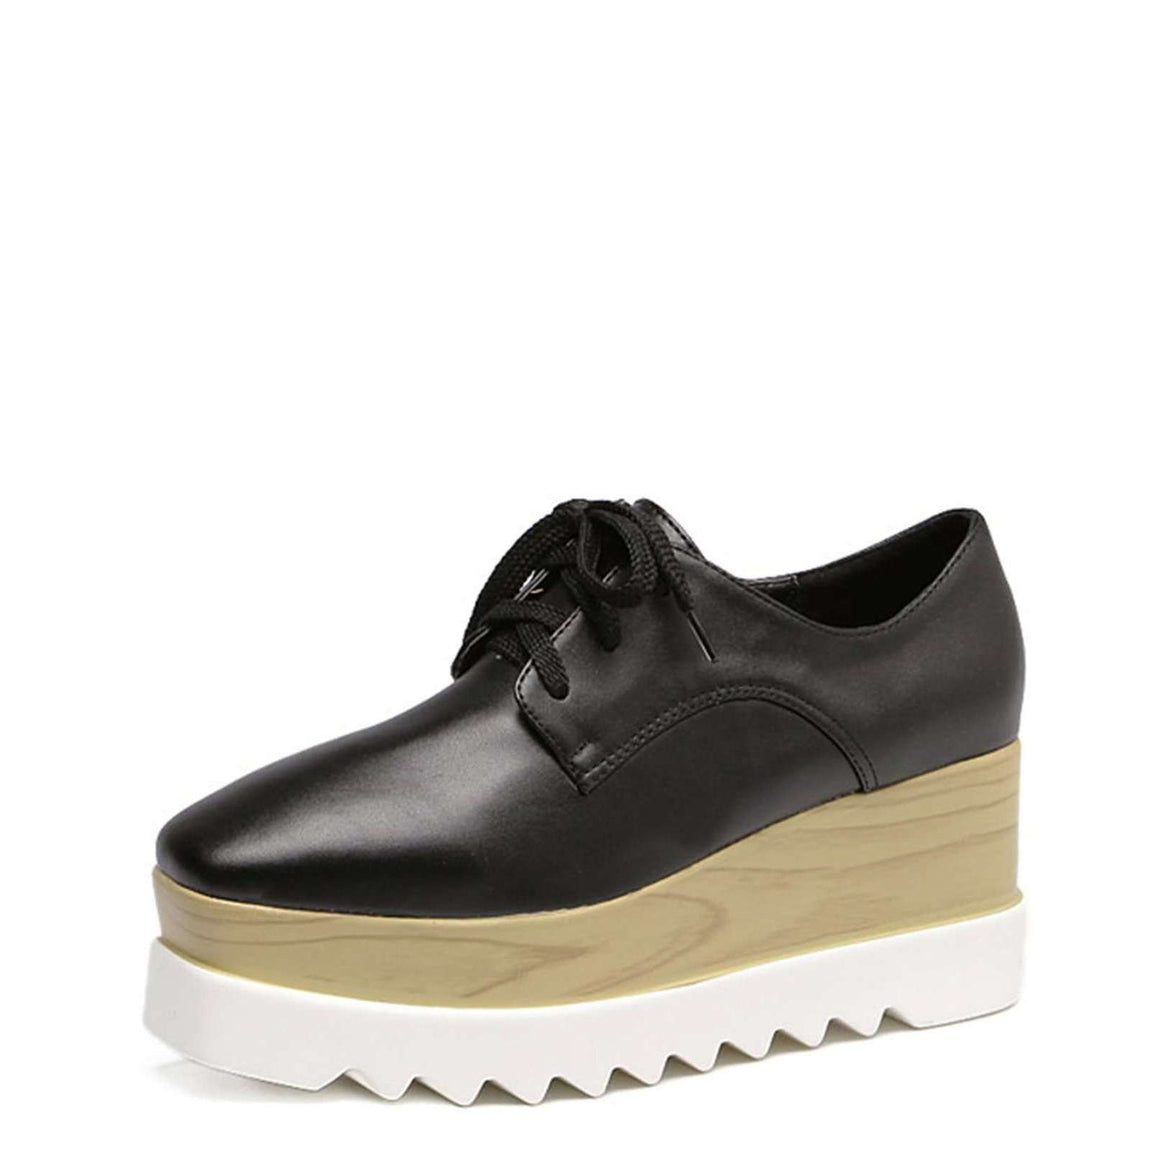 CLOCHE First Crush Wedge Oxfords-CLOCHE-CLOCHE